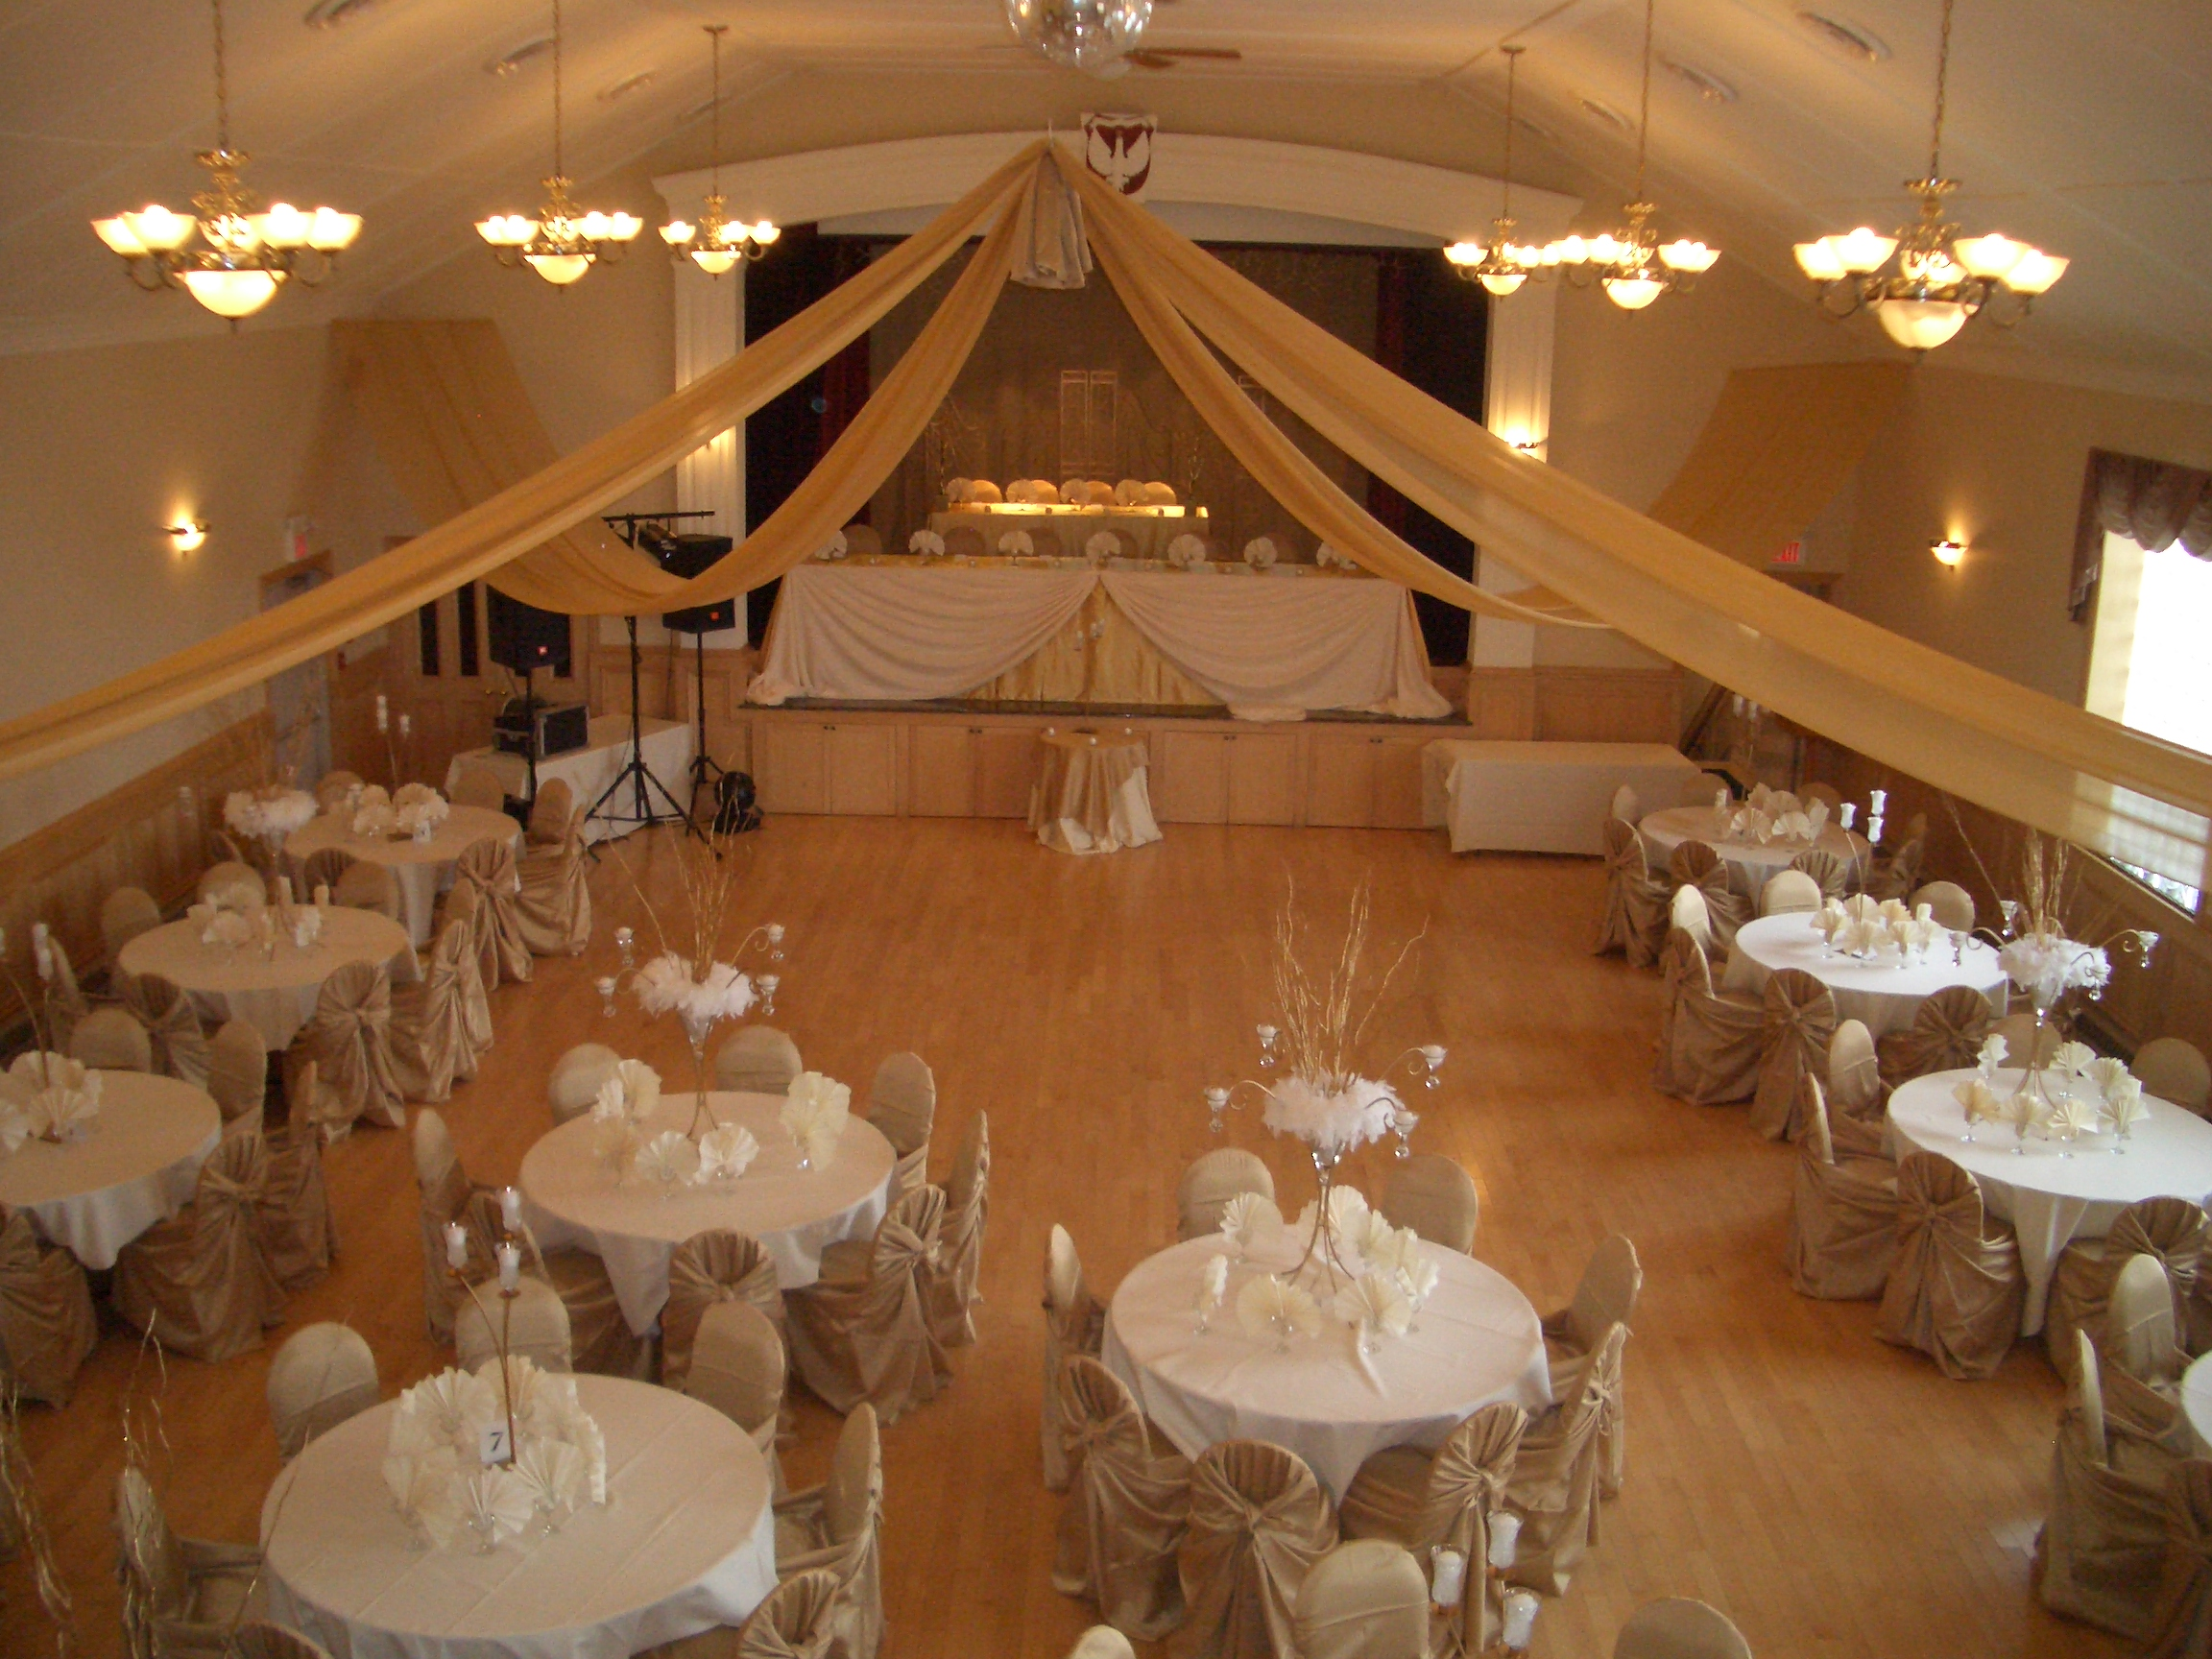 Banquet hall decorated for a wedding reception gallery view for Hall decoration images